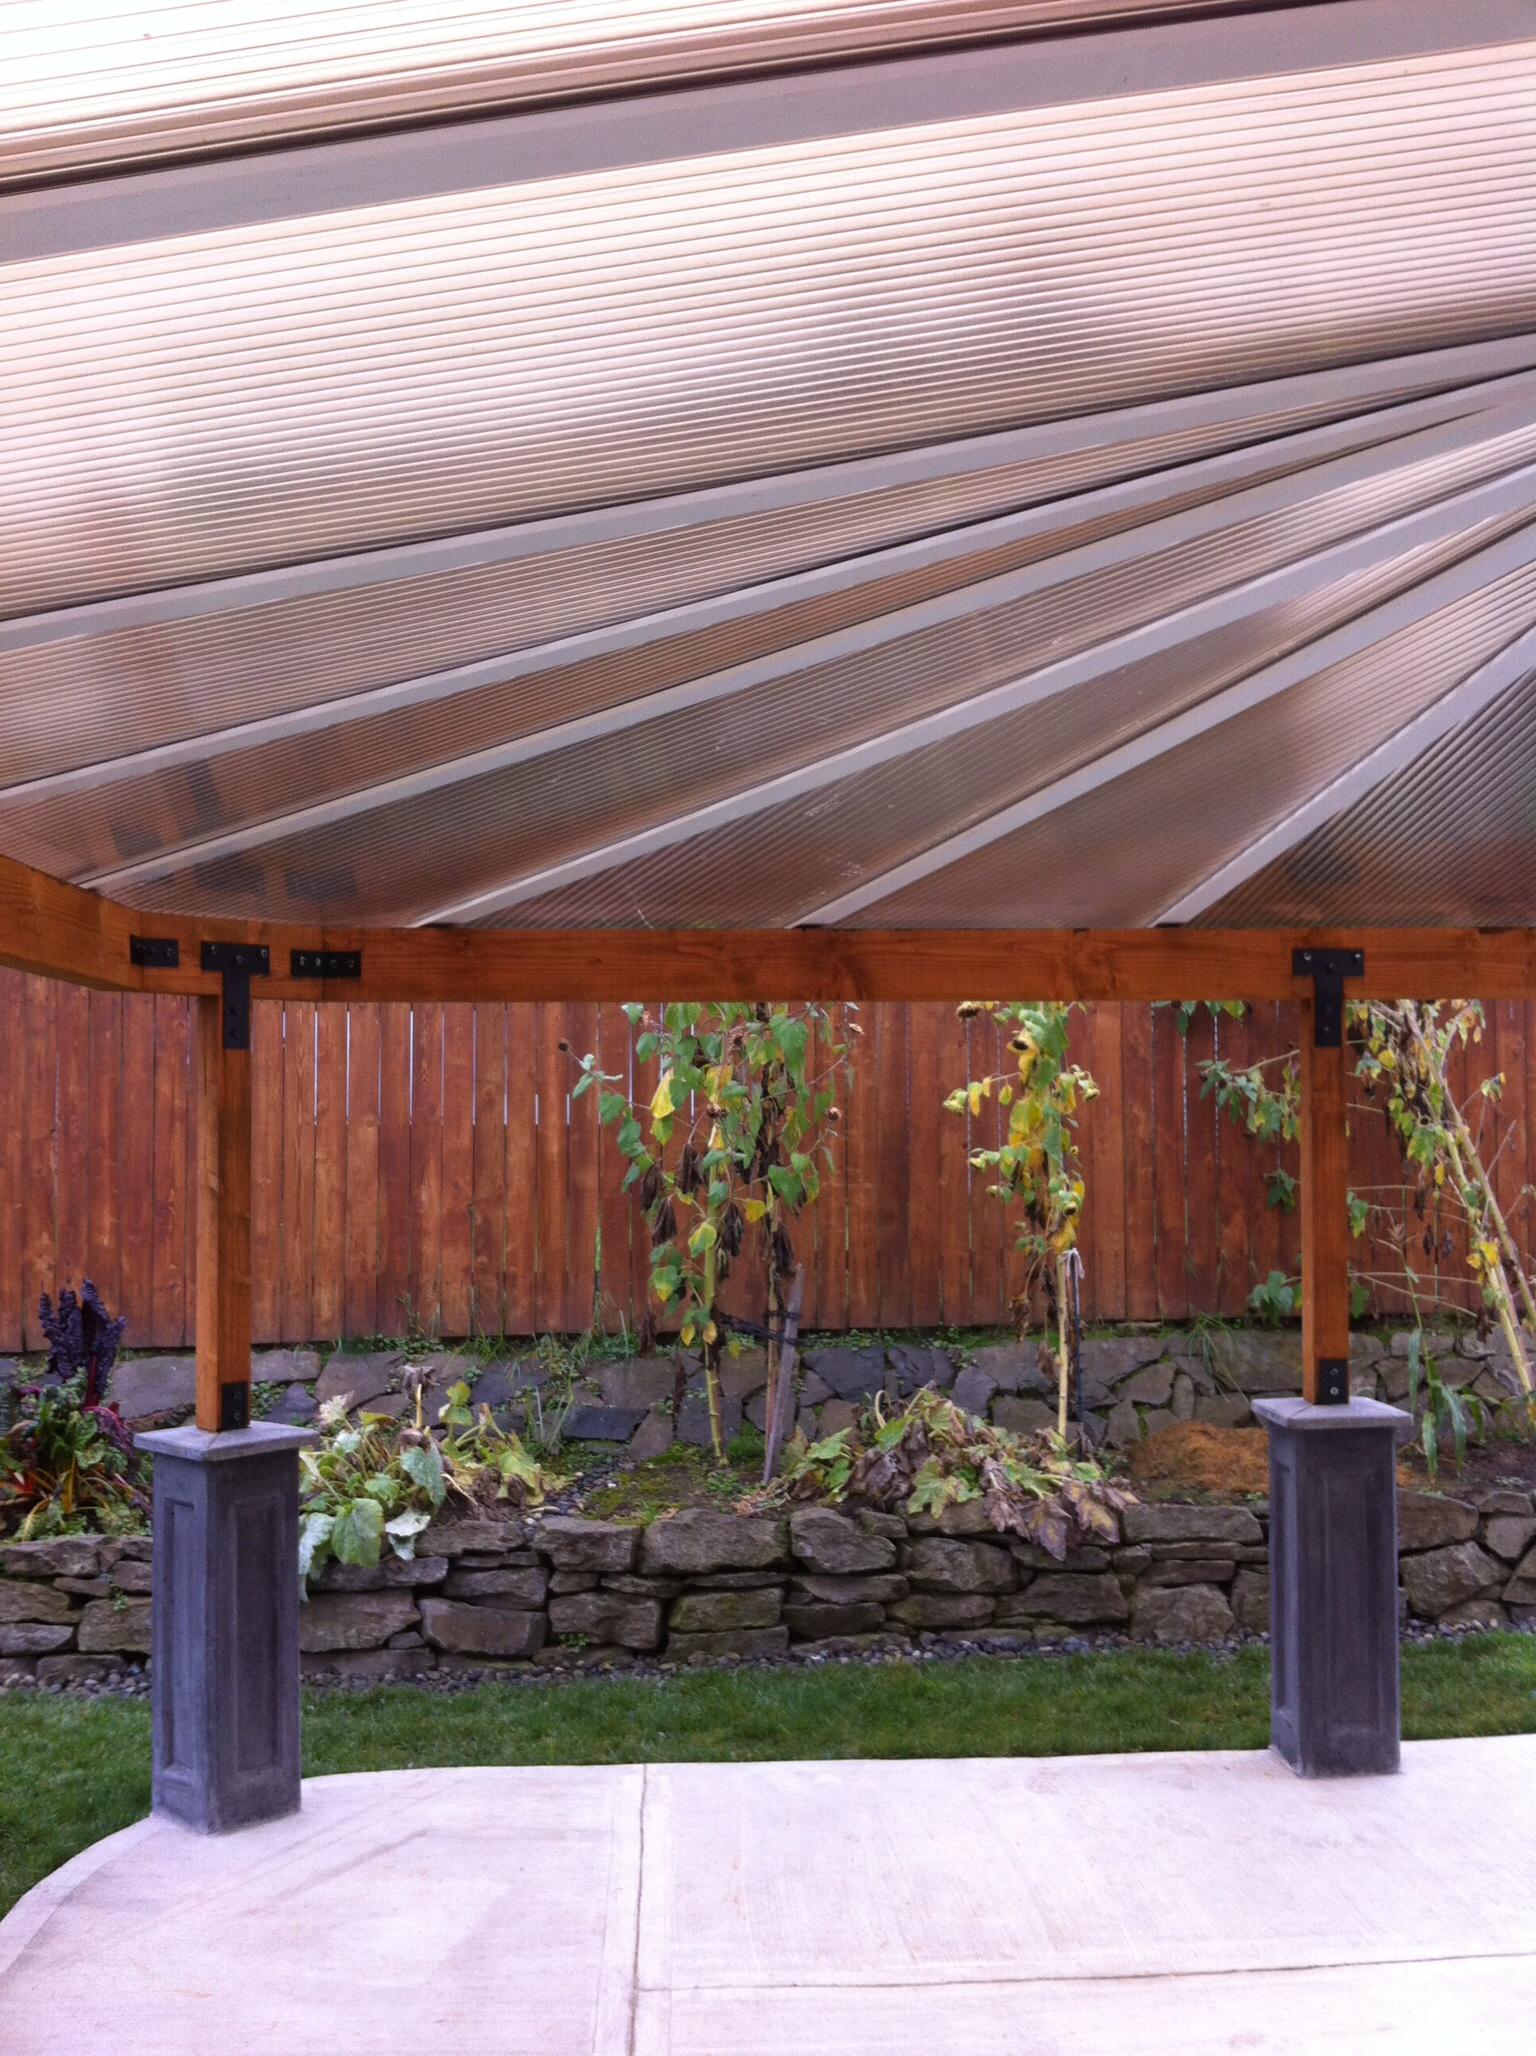 Home Patio Gallery San Juan Puerto Rico: Patio Cover Gallery - Awnings - Deck Covers